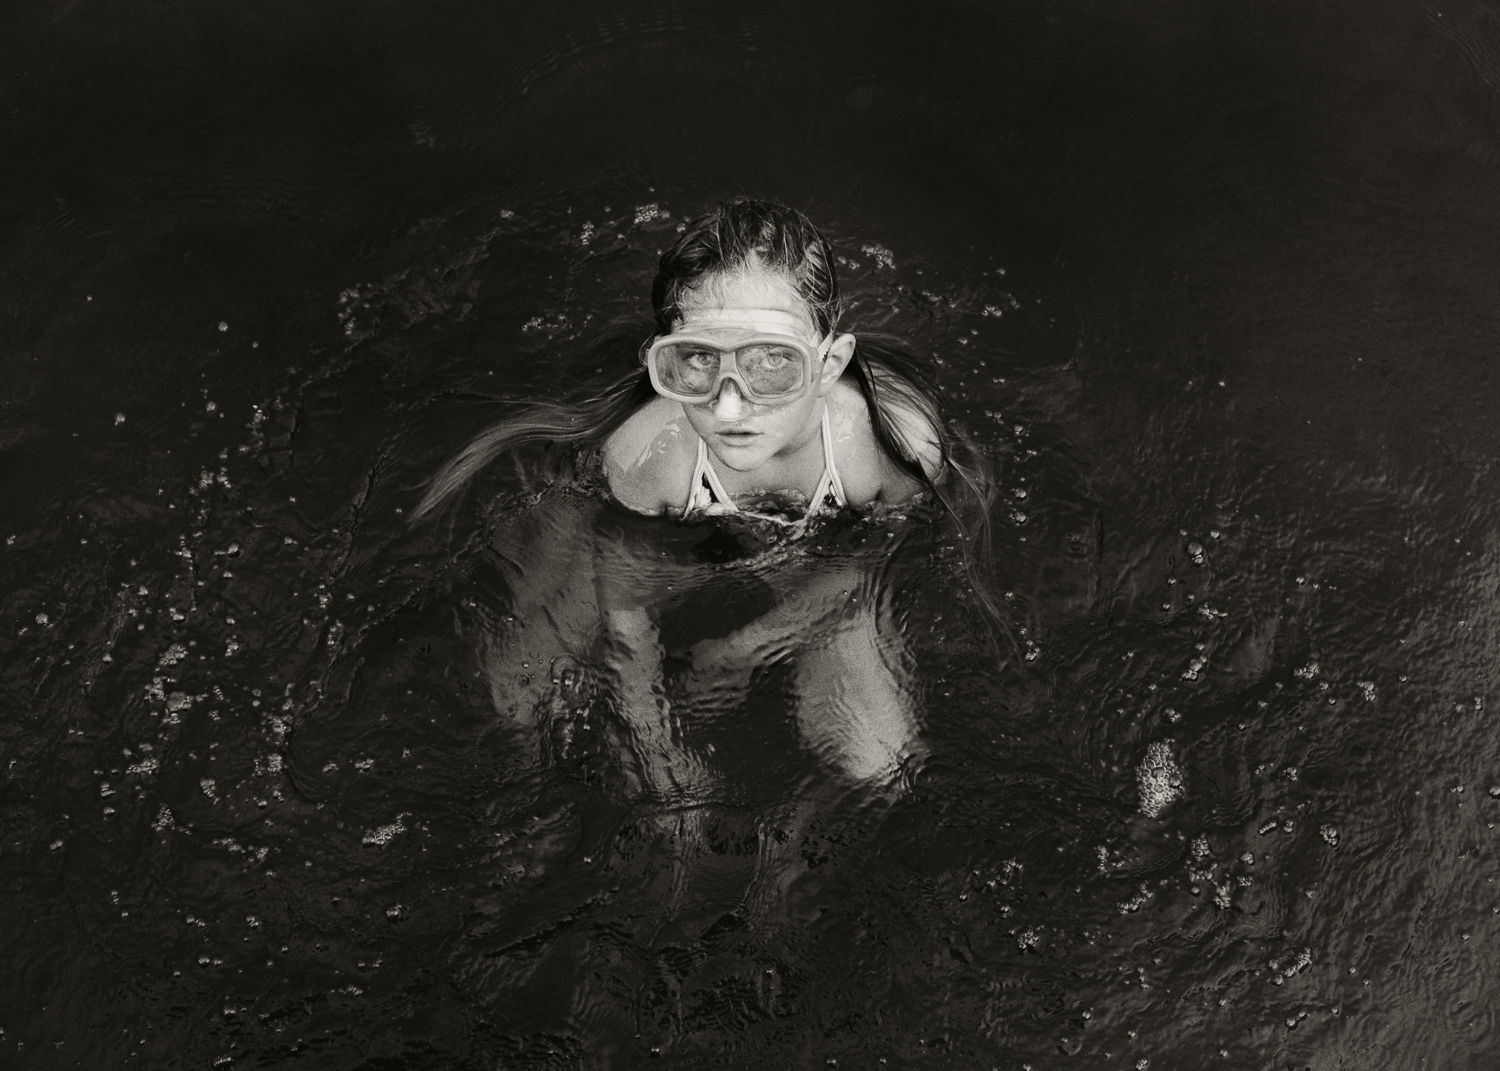 Ellie with Goggles, Battle Creek, 2012